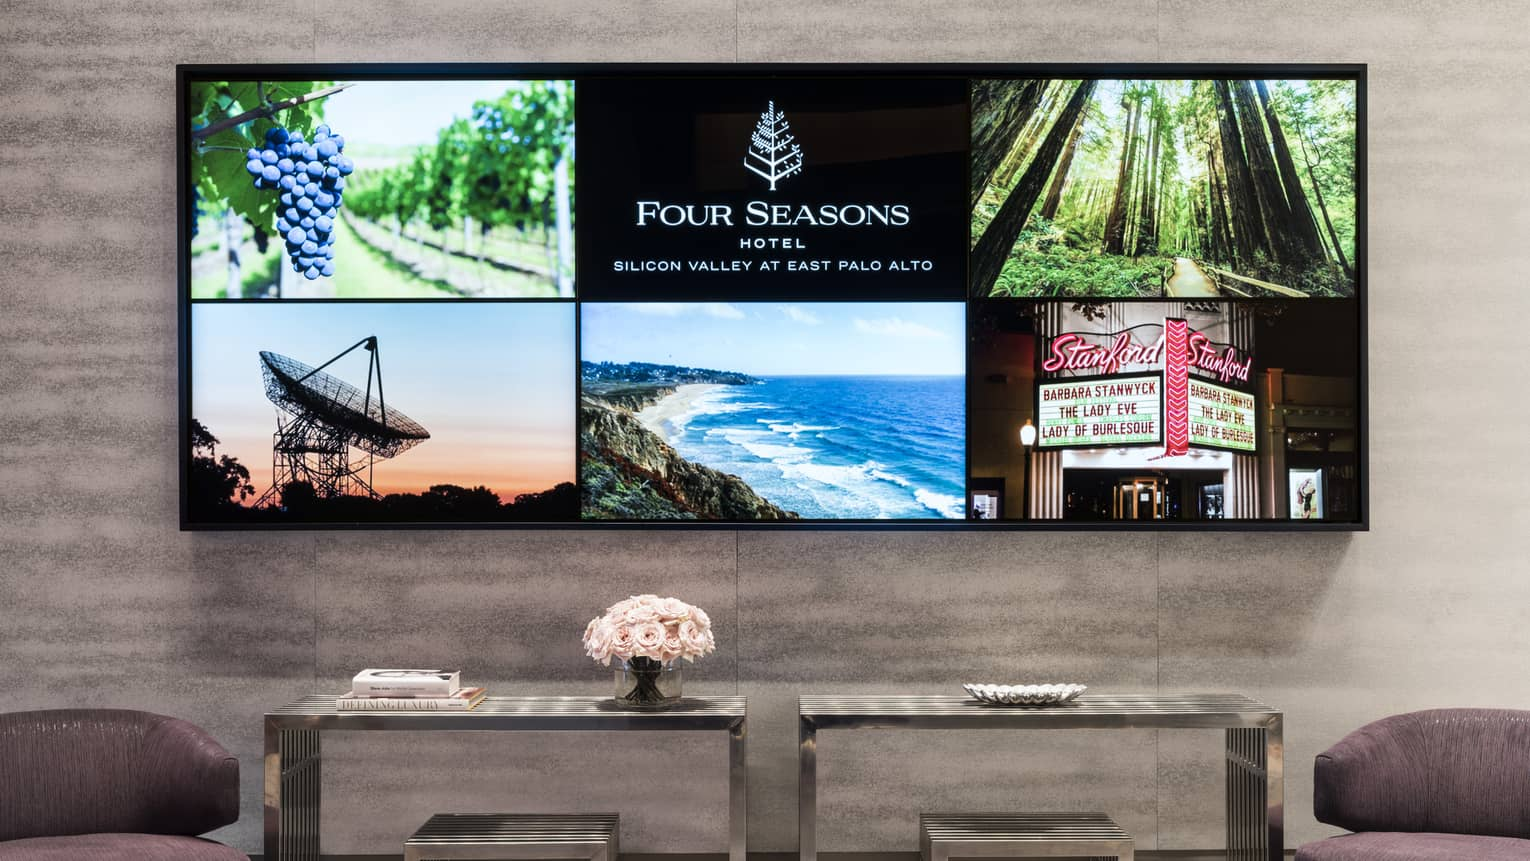 Two armchairs, console tables under large screen displaying Four Seasons photos